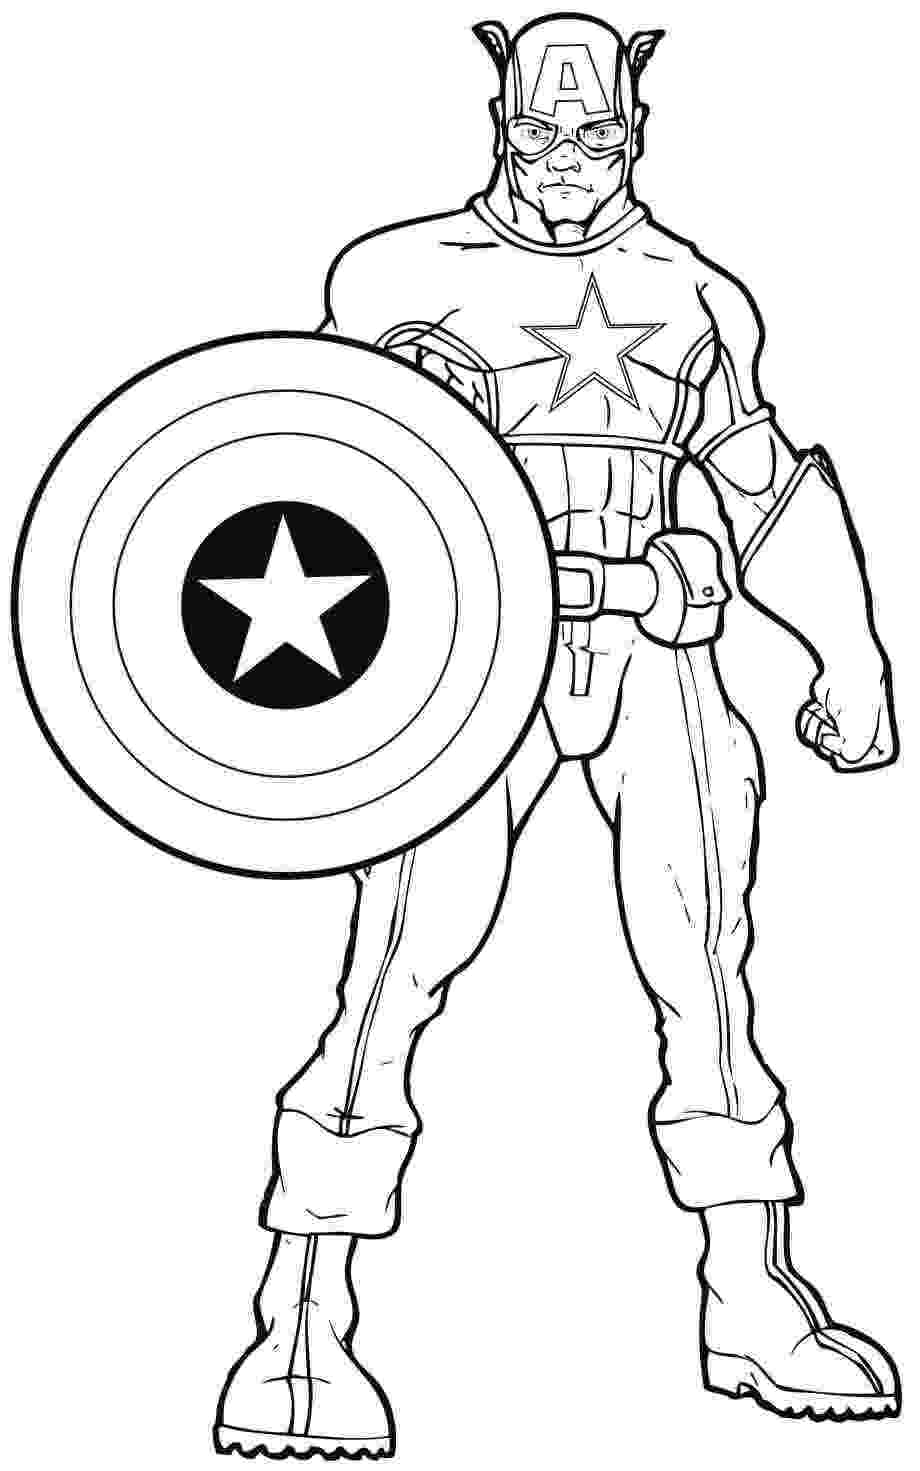 coloring pages superheroes superhero coloring pages coloring superheroes pages